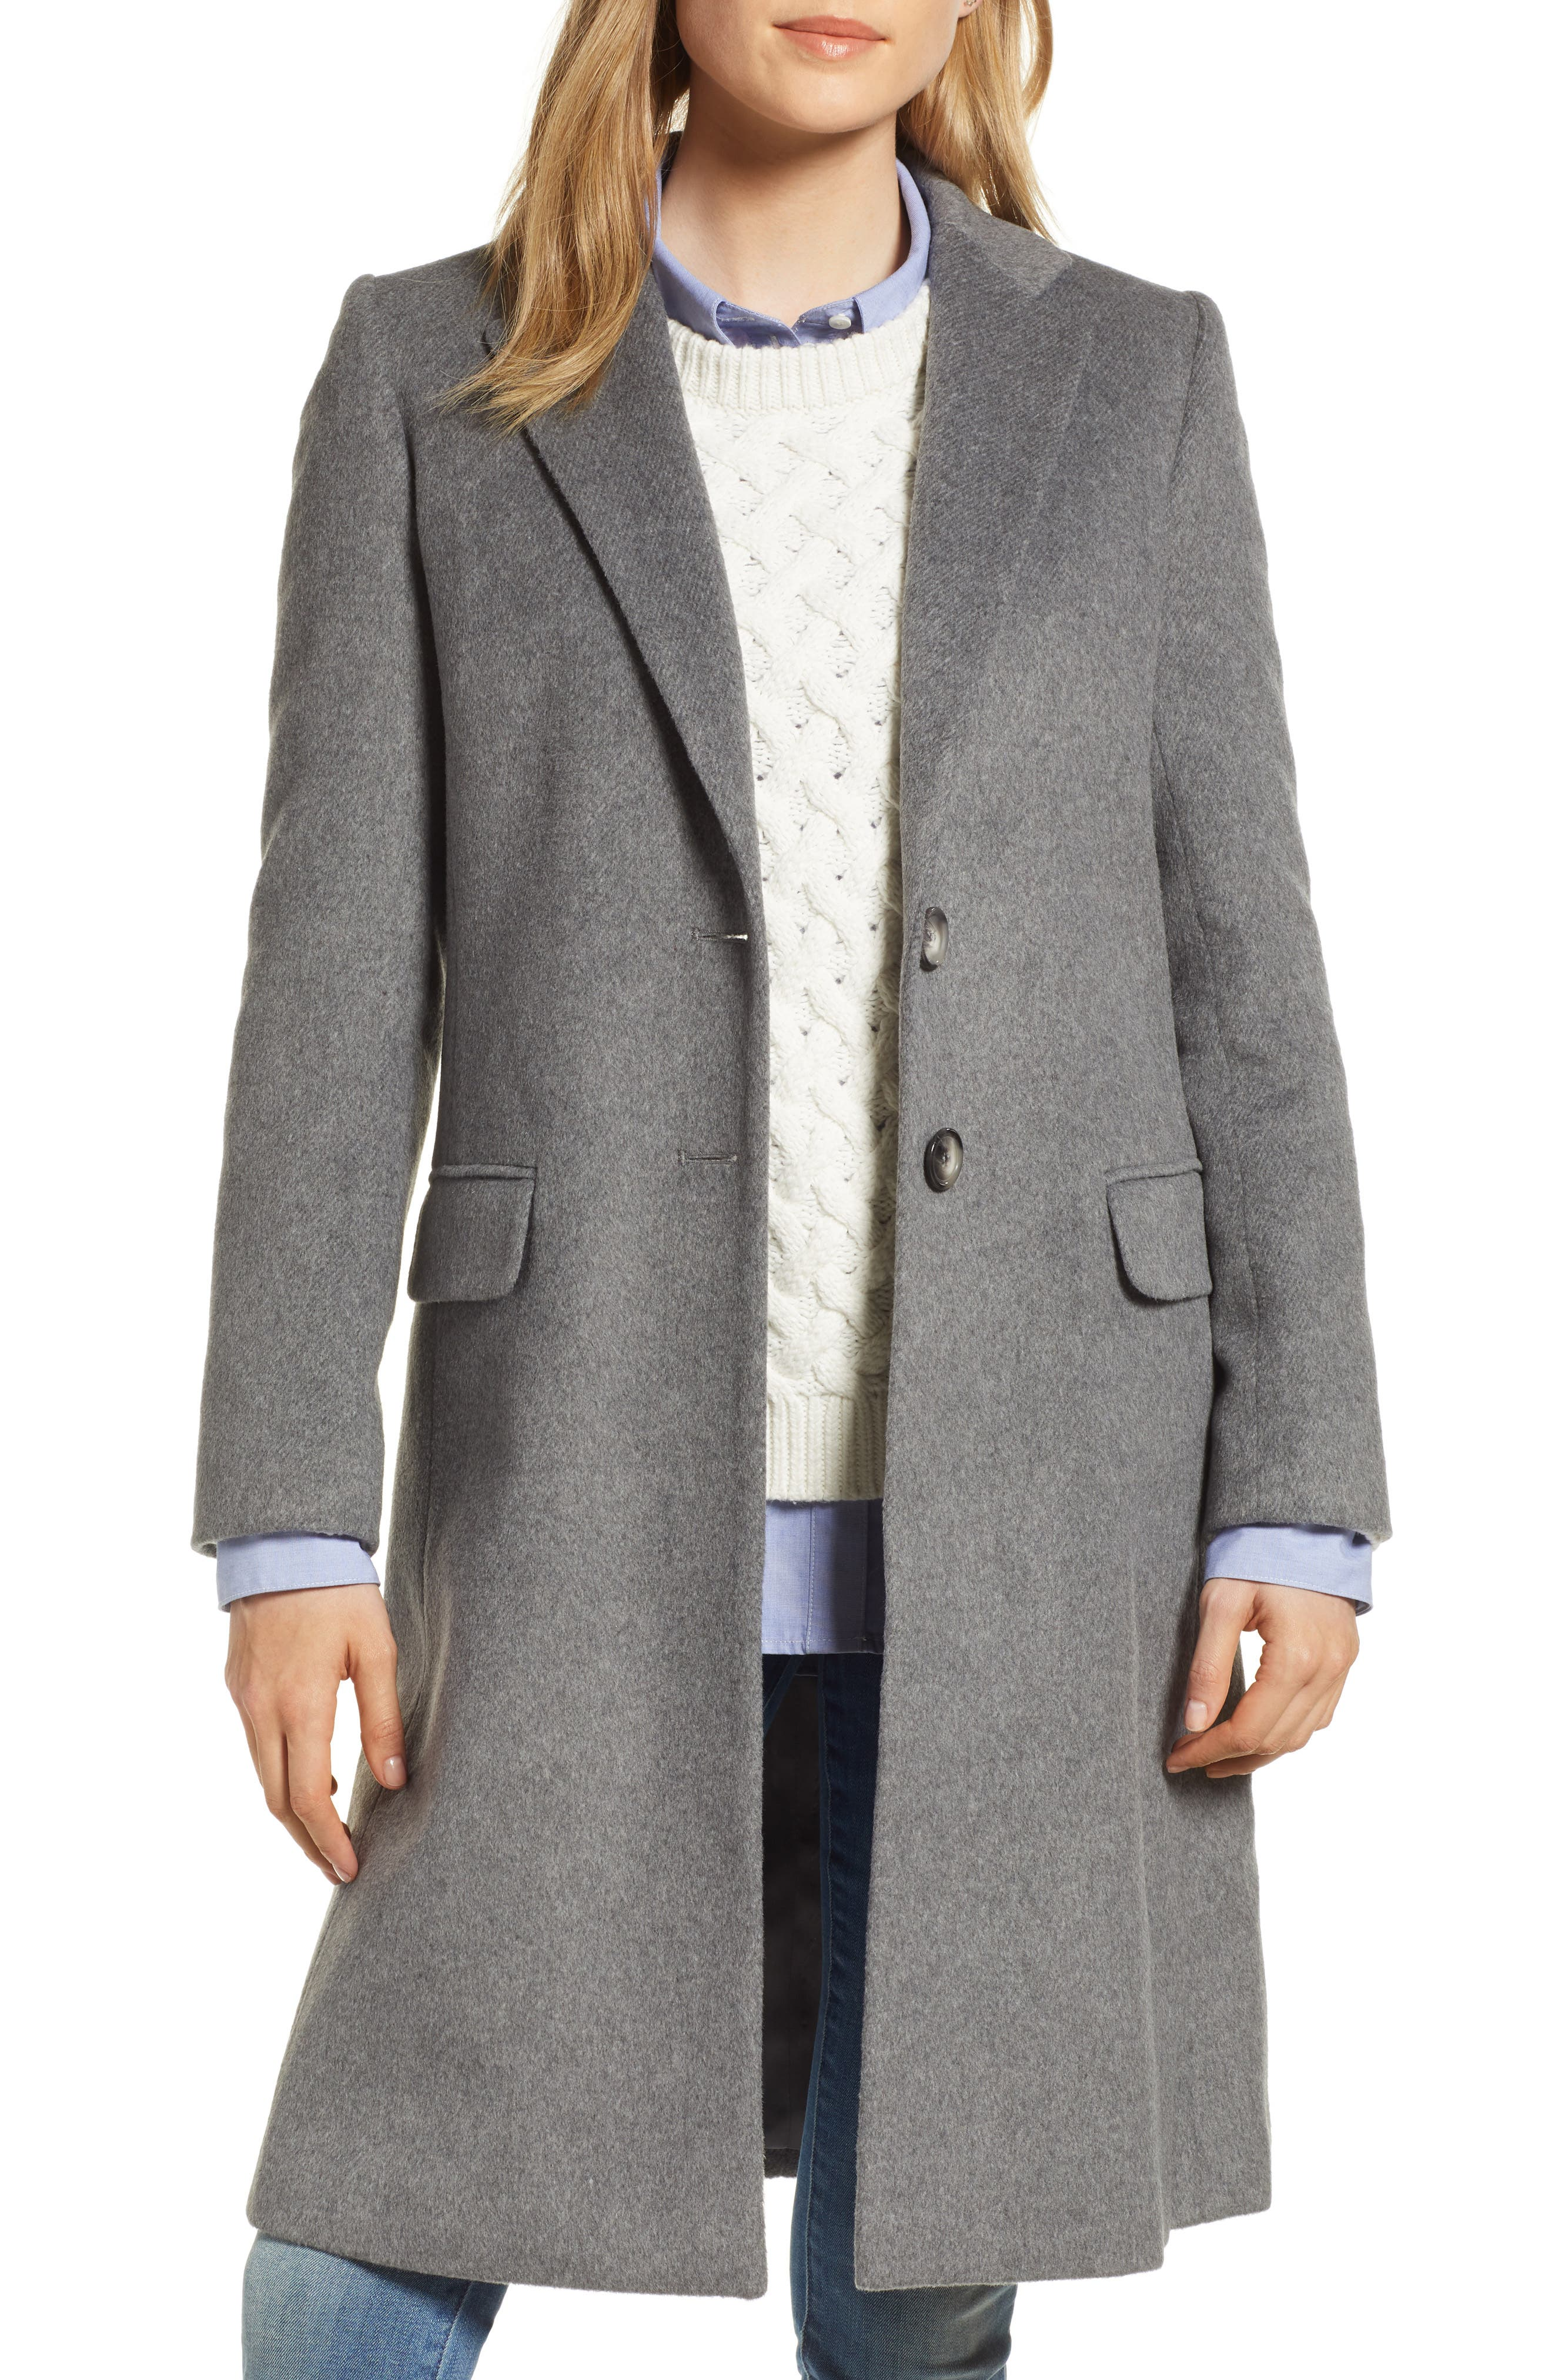 Charles Gray London College Coat,                         Main,                         color, 020